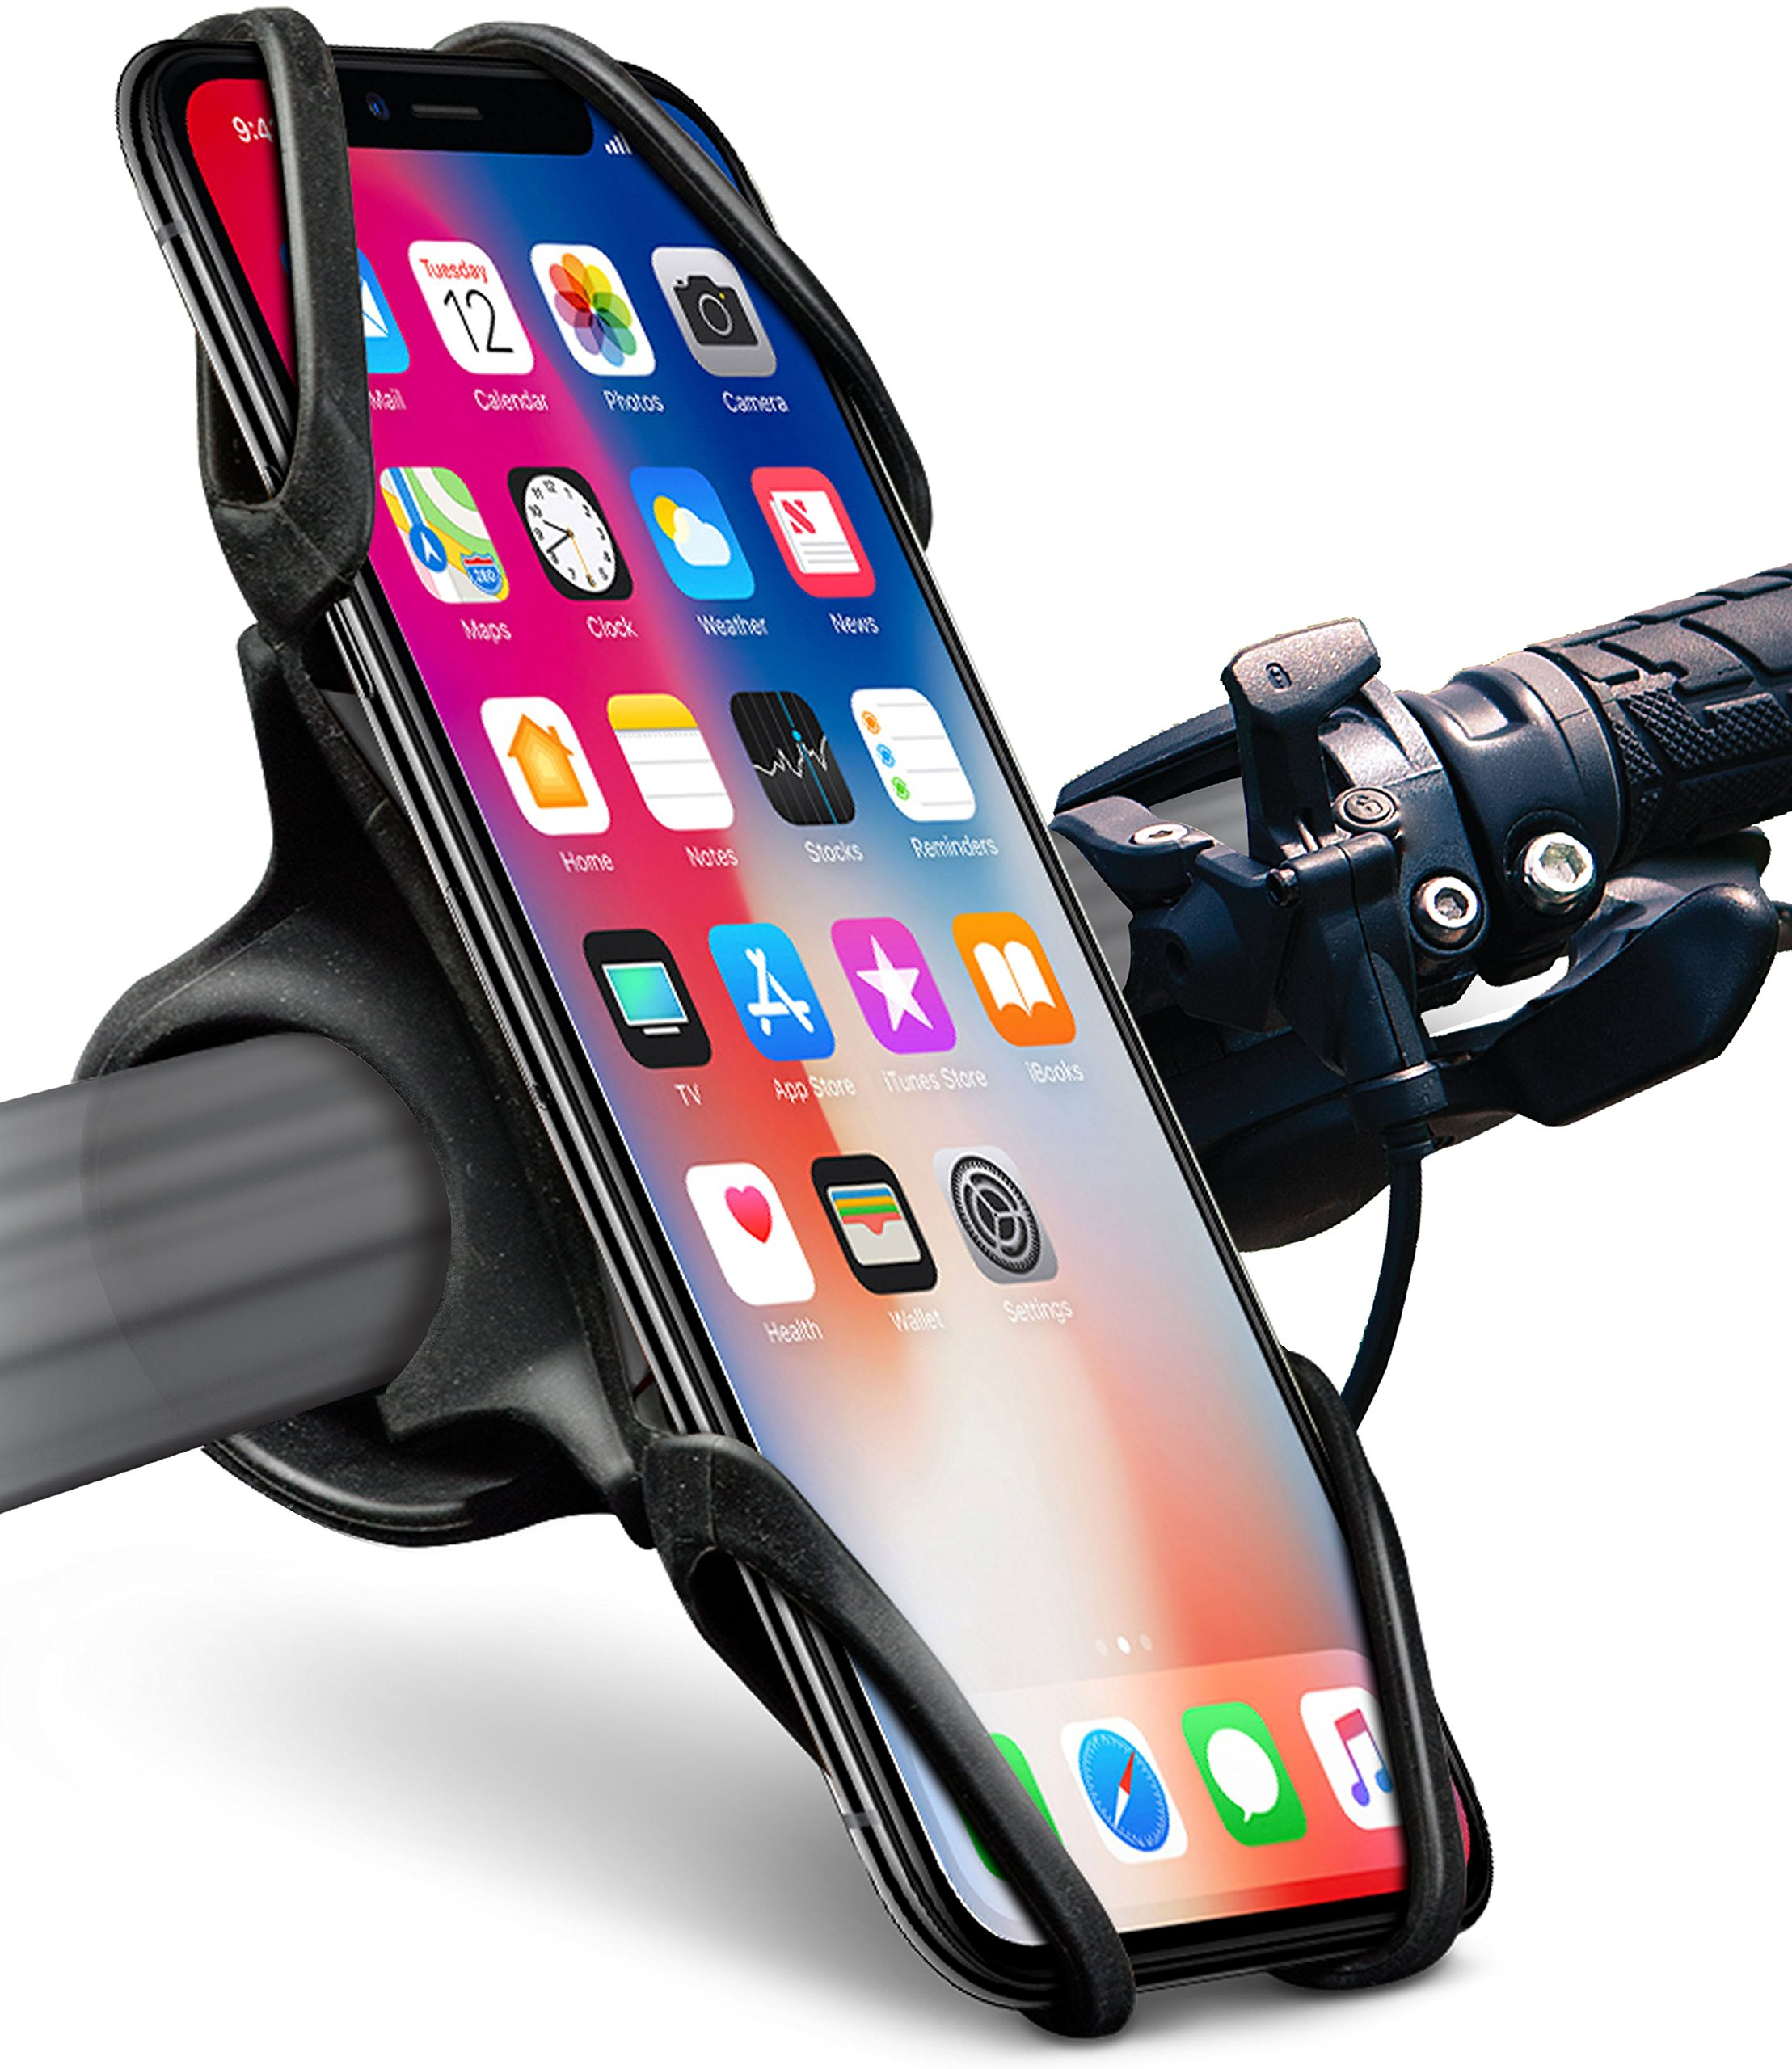 Okra Bike Phone Mount Bicycle Holder for iPhone X 8 7 6 6s Plus, [Web Grip] Silicone Bicycle Motorcycle Universal Grip Cradle Clamp Holder for all Smartphones by Okra